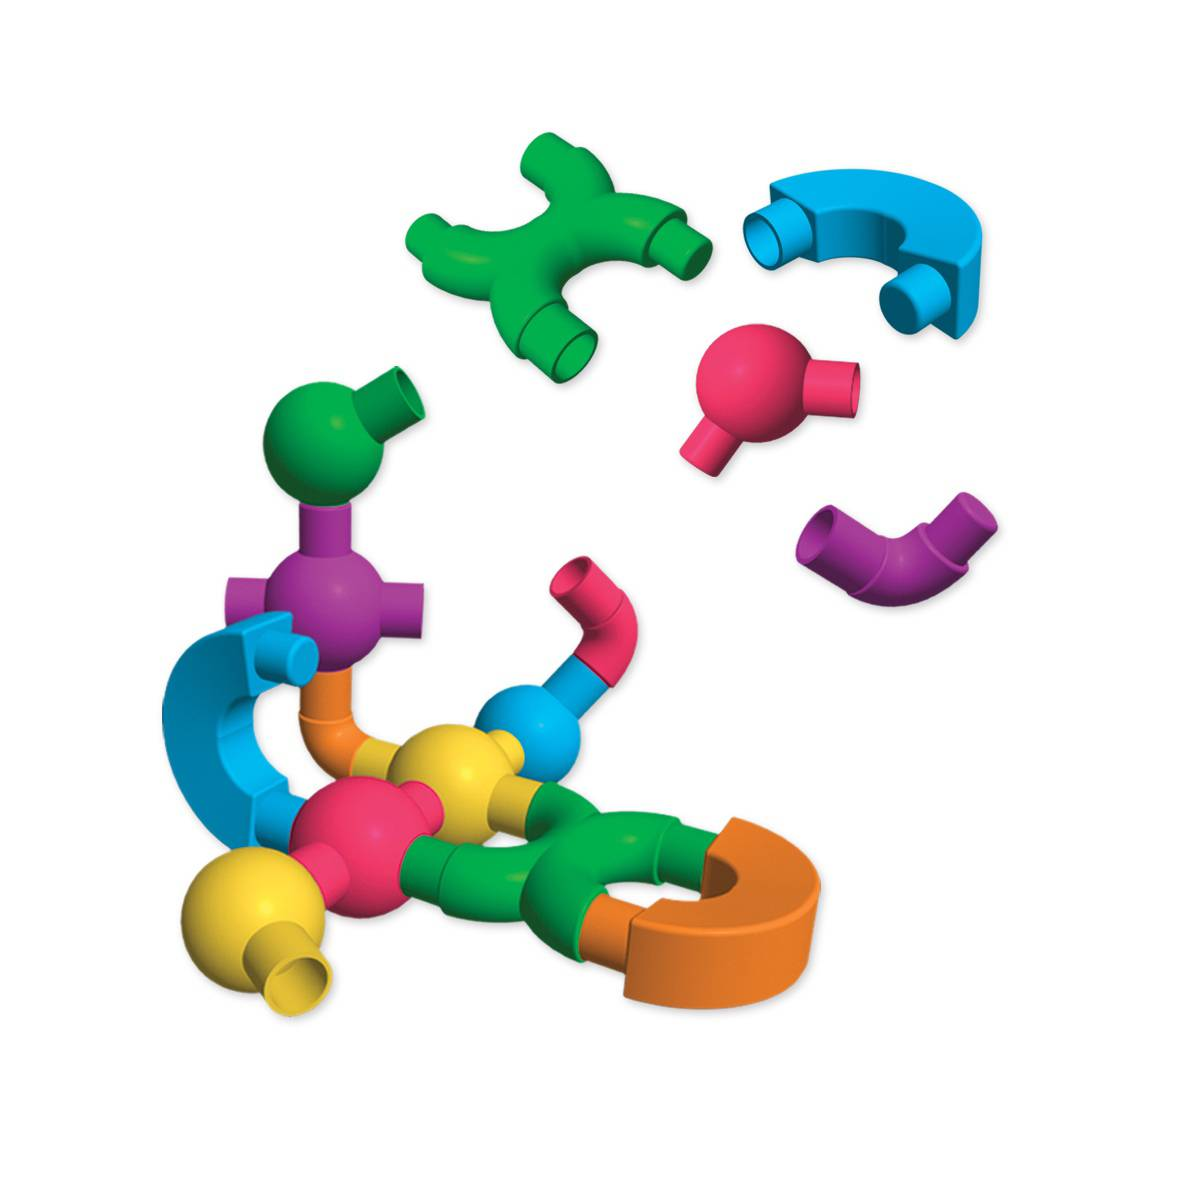 Edushape Kiddy Connects Extenders Toy Set contains a variety of interesting snap-and-lock shapes that allow kids to create more complex structures and learn more about spatial concepts.